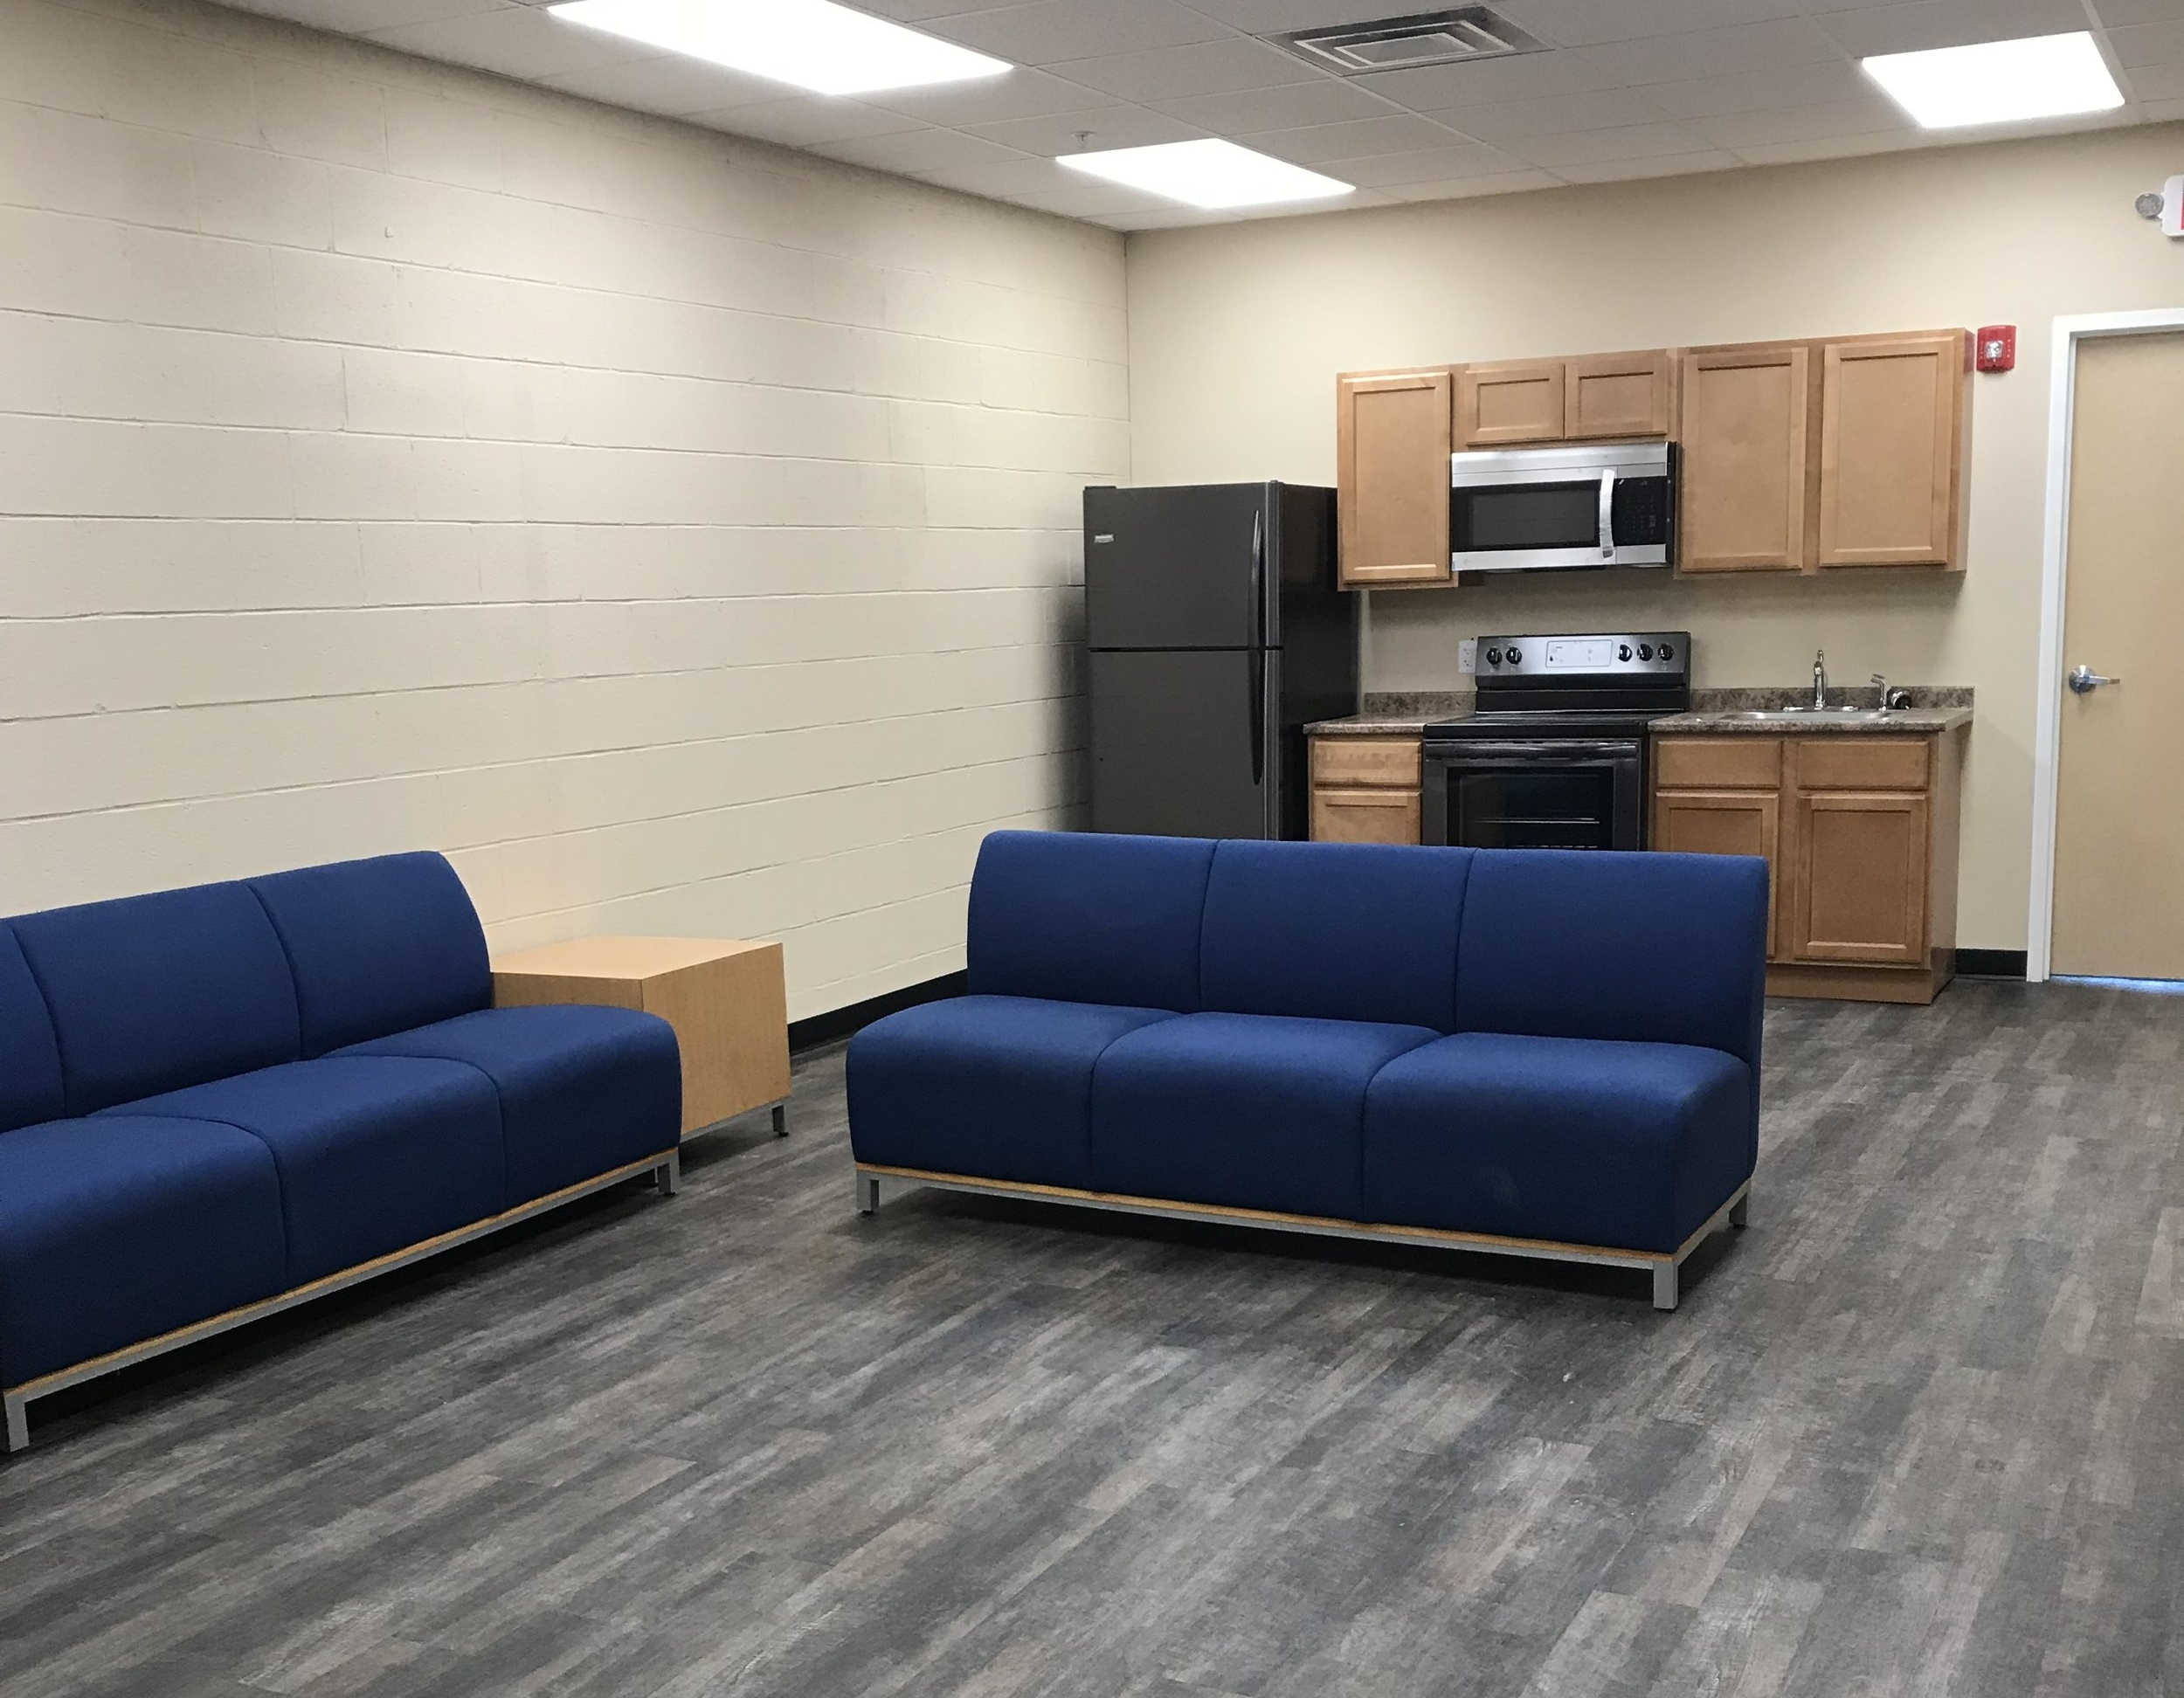 Crew lounge and kitchenette area